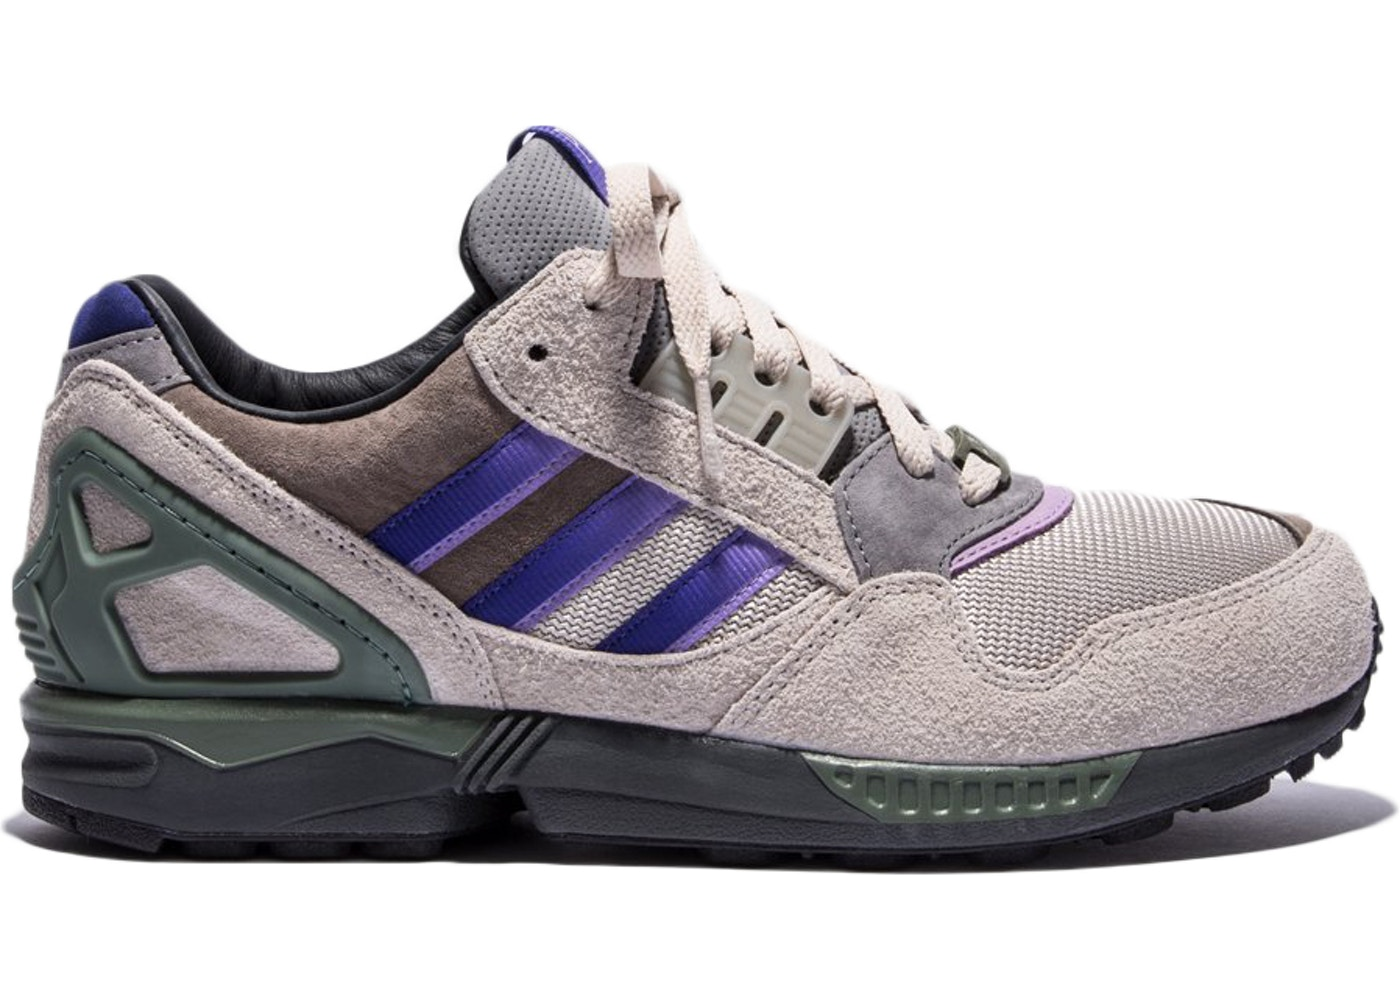 メンズ靴, スニーカー  ADIDAS ZX9000 PACKER SHOES MEADOW VIOLET GREY PURPLE GREEN